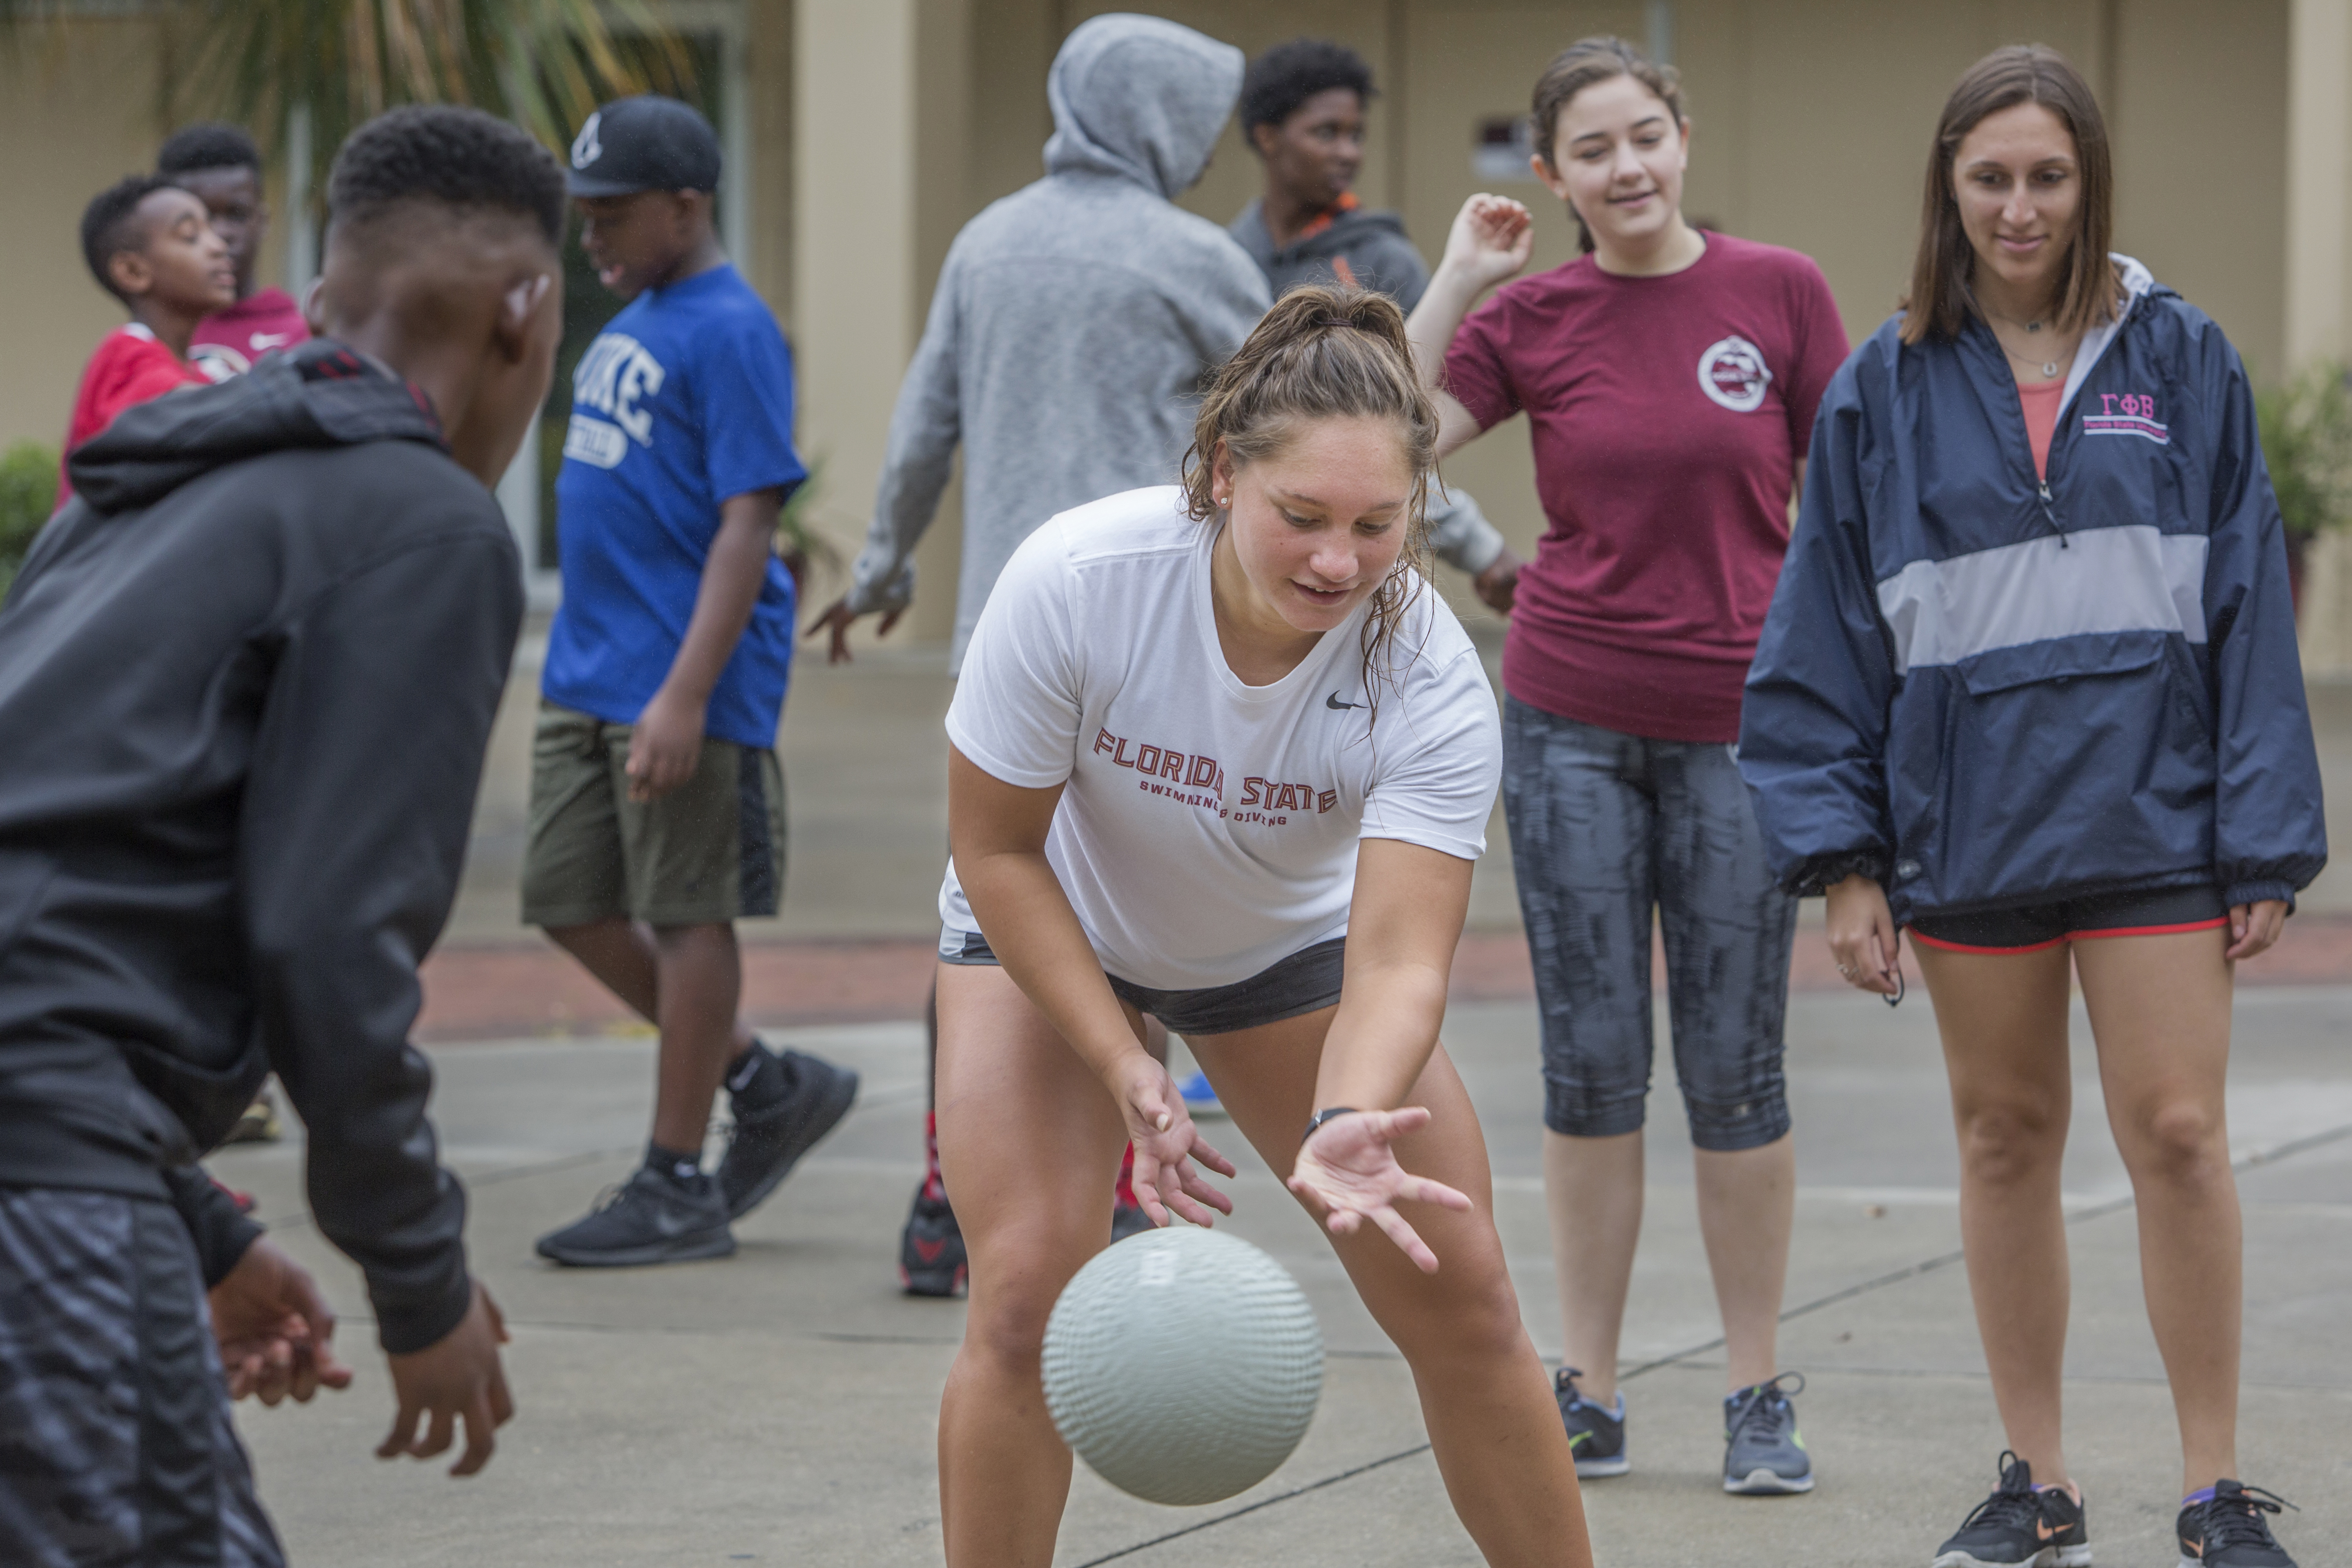 FSU Swimmer Paige Schendelaar-Kimp playing four square with campers.